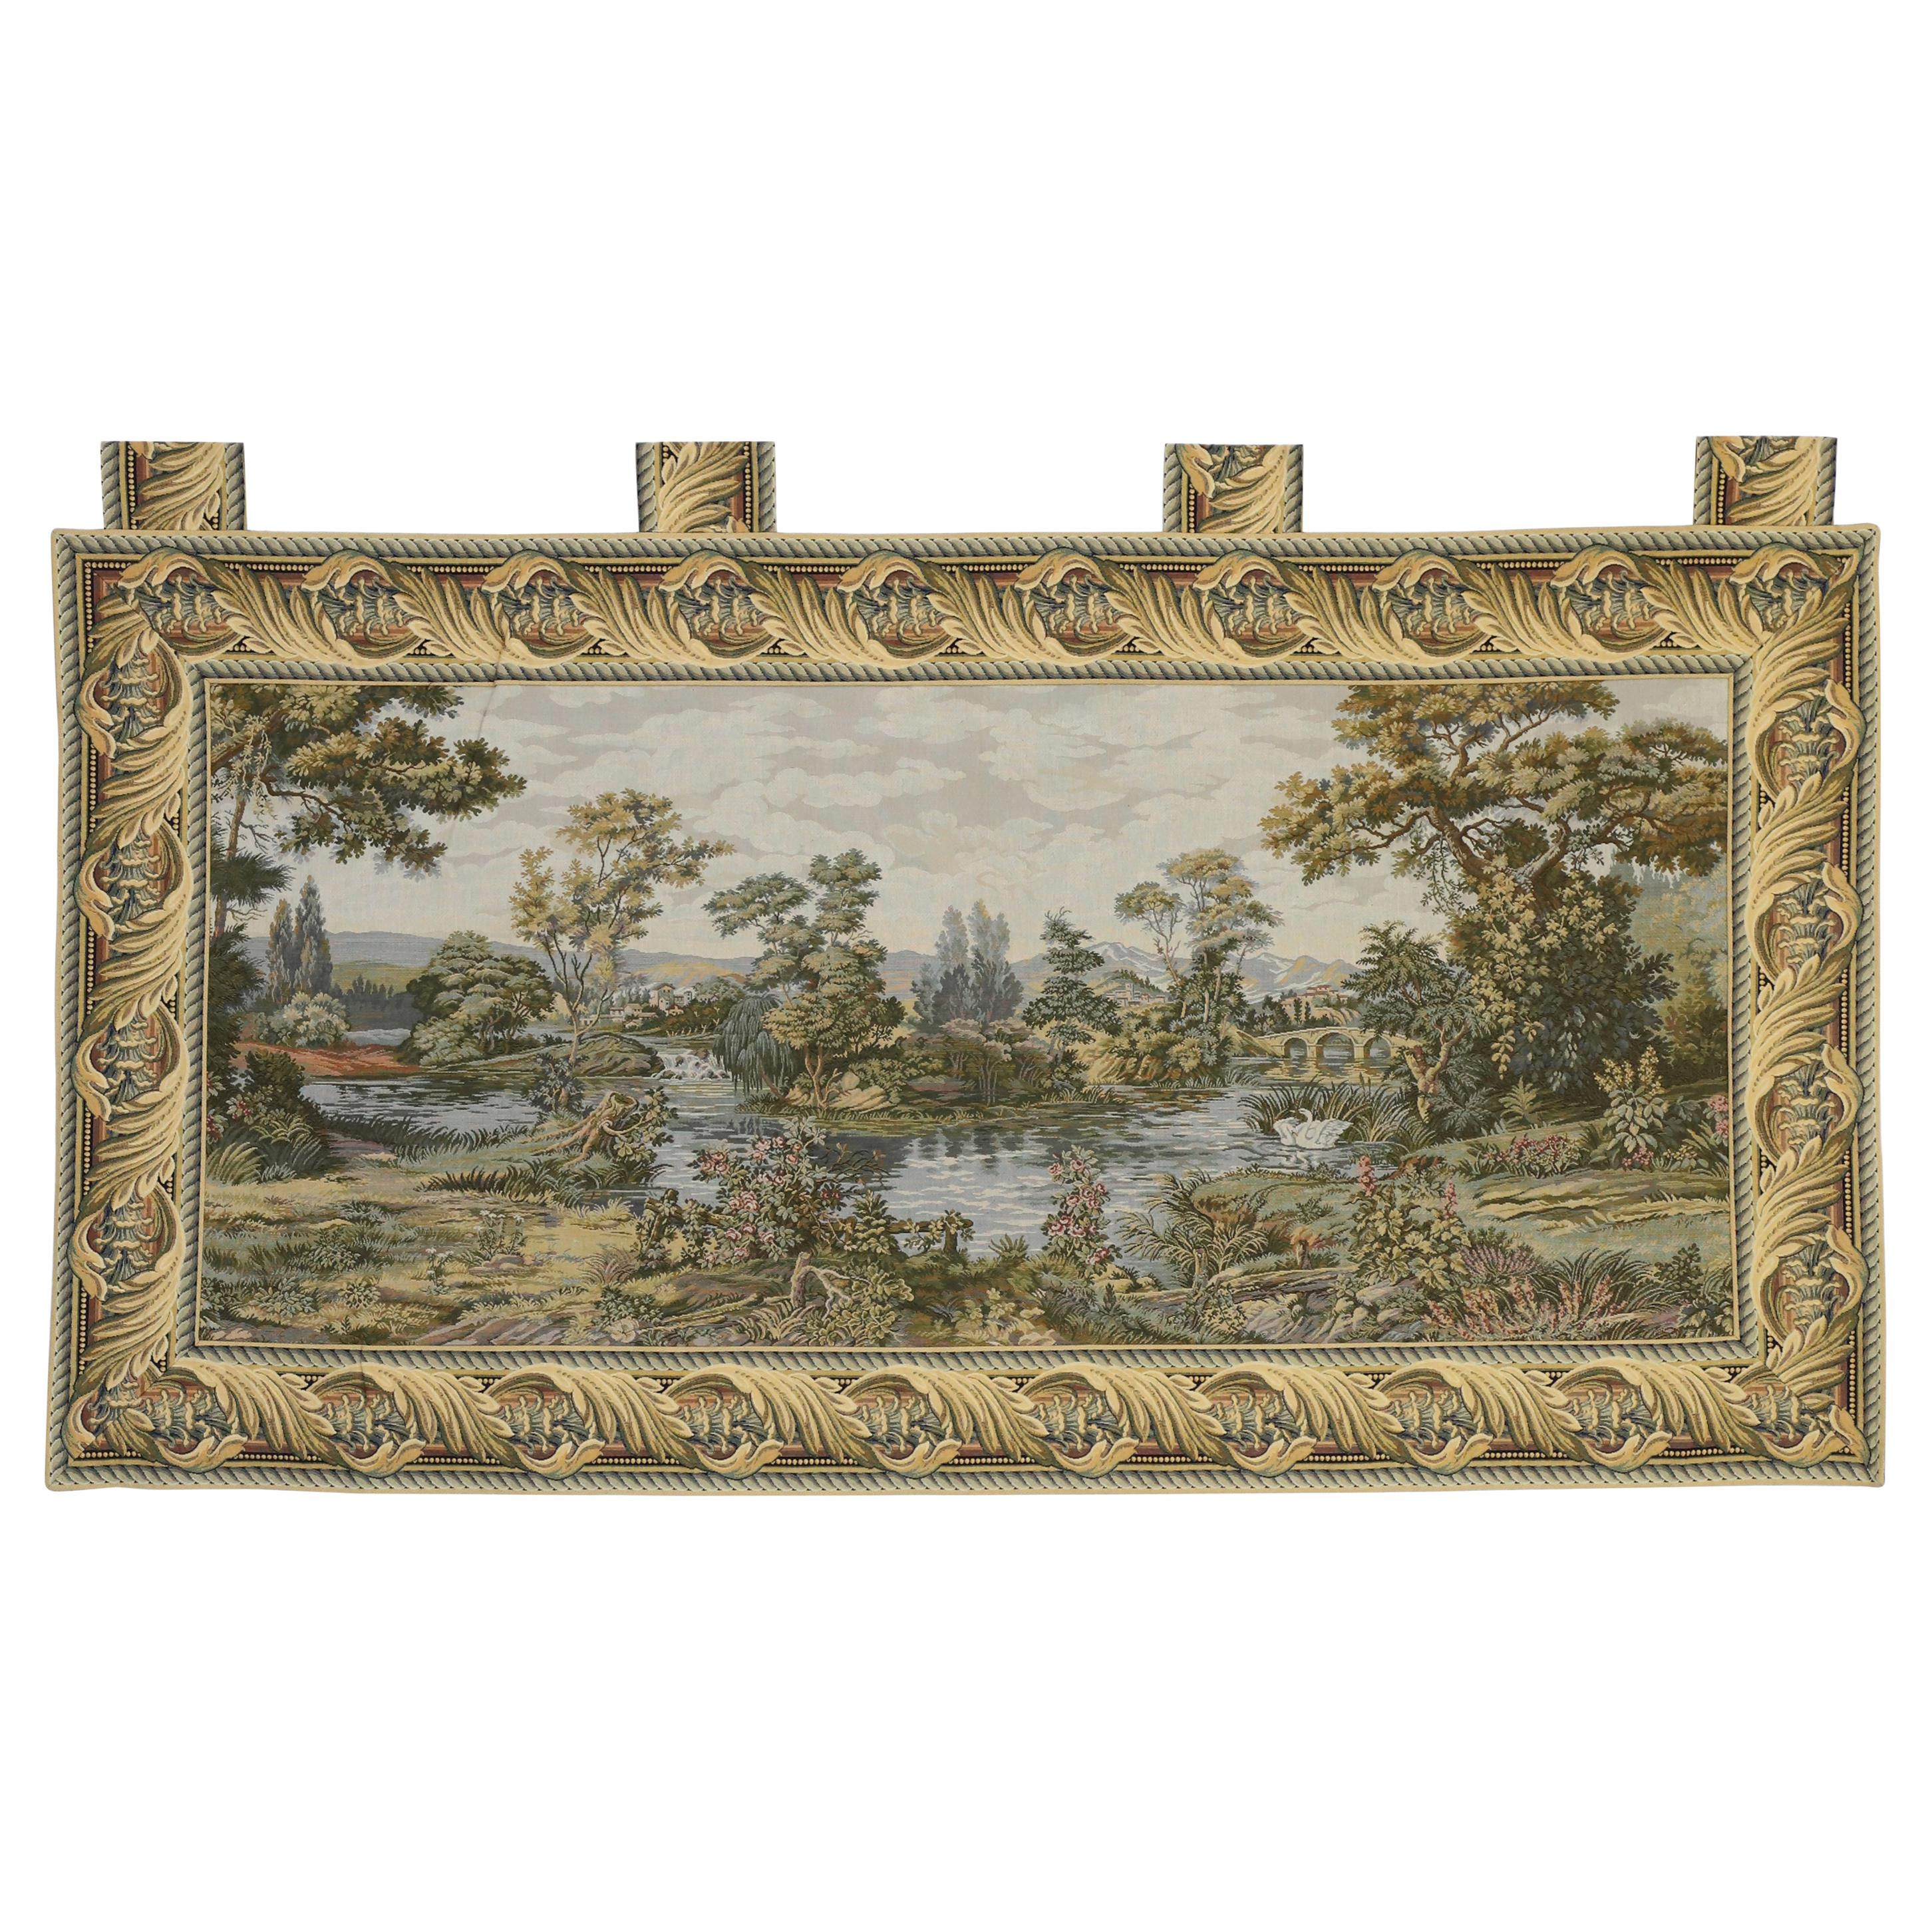 Vintage Italian Tapestry Swan in the Lake, Renaissance Style Wall Hanging